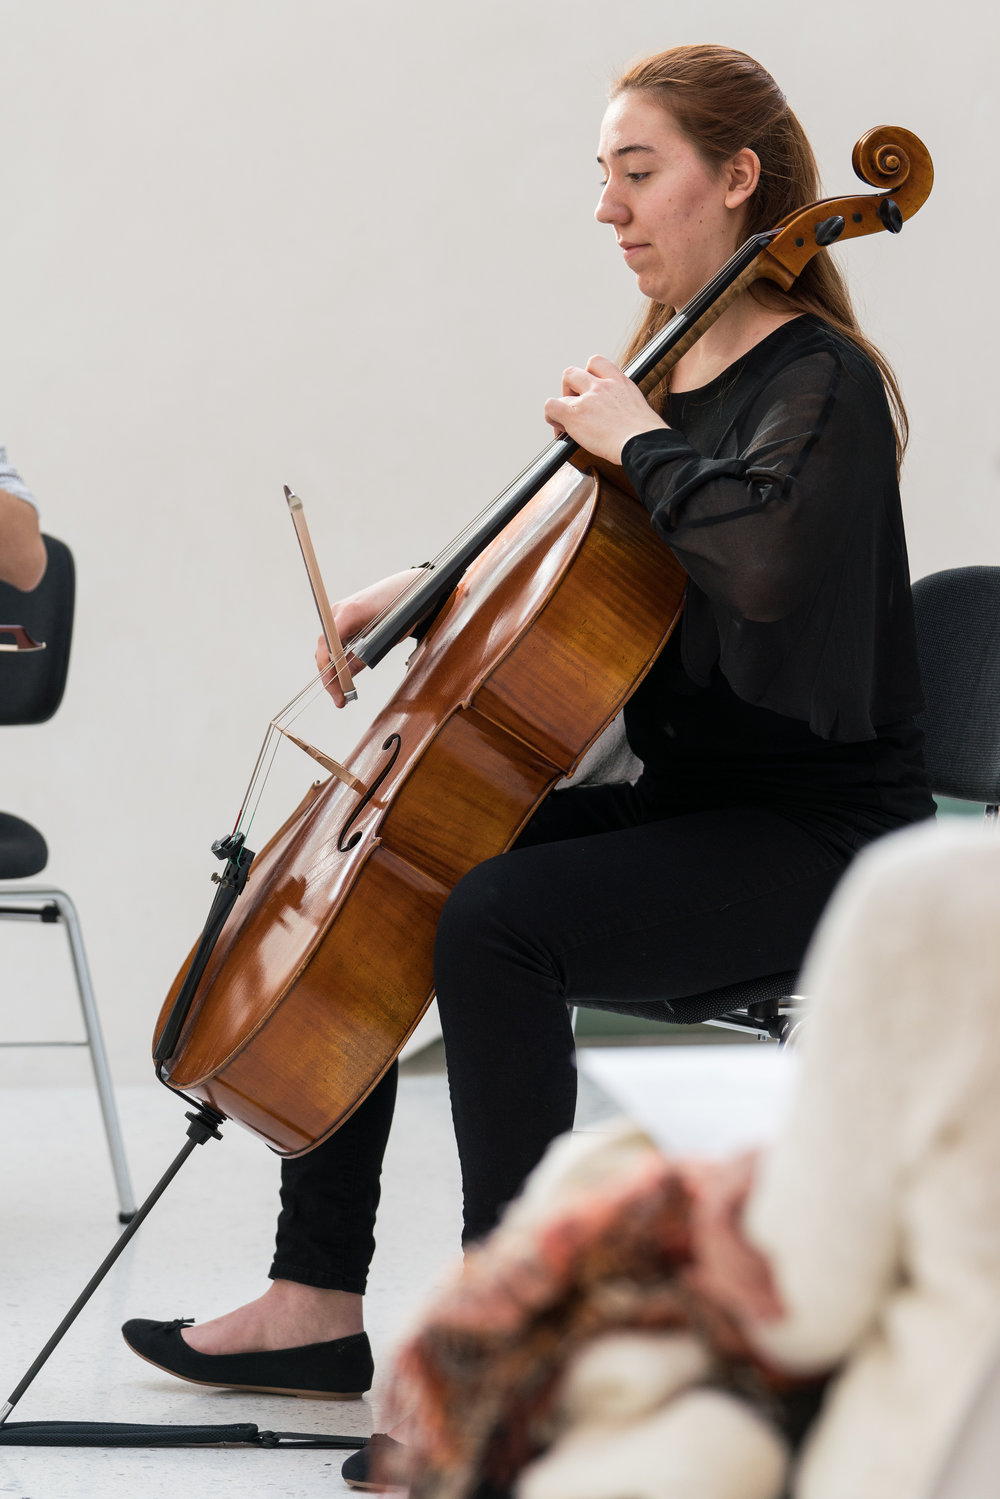 Konzert am Mittag - Cello20180206_002-036.jpg